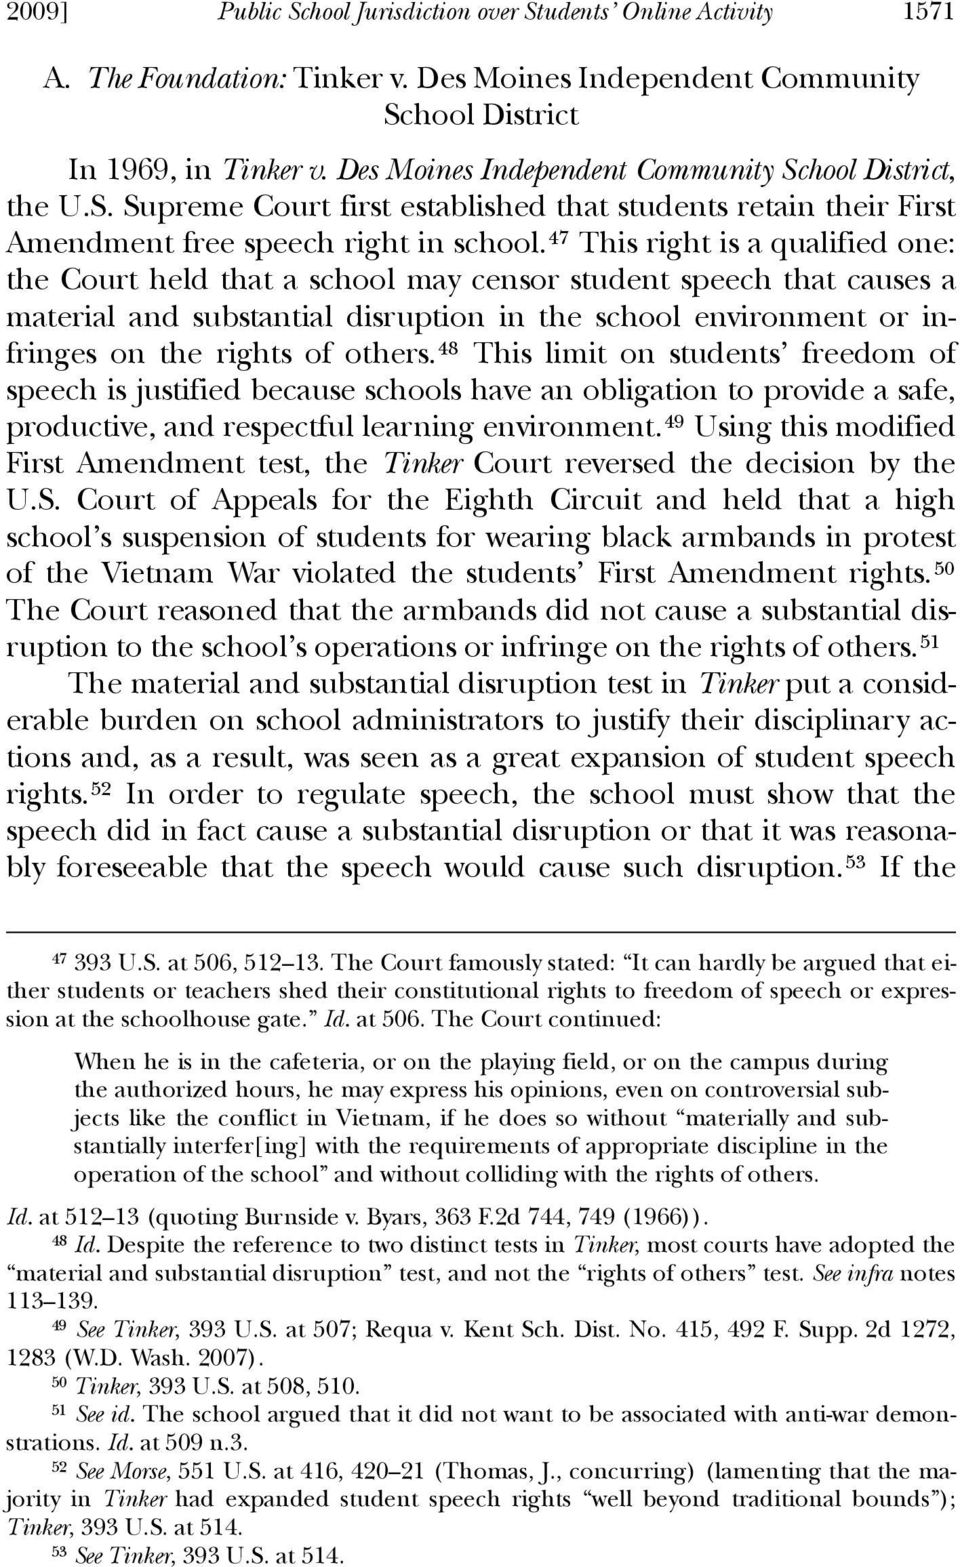 47 This right is a qualified one: the Court held that a school may censor student speech that causes a material and substantial disruption in the school environment or infringes on the rights of